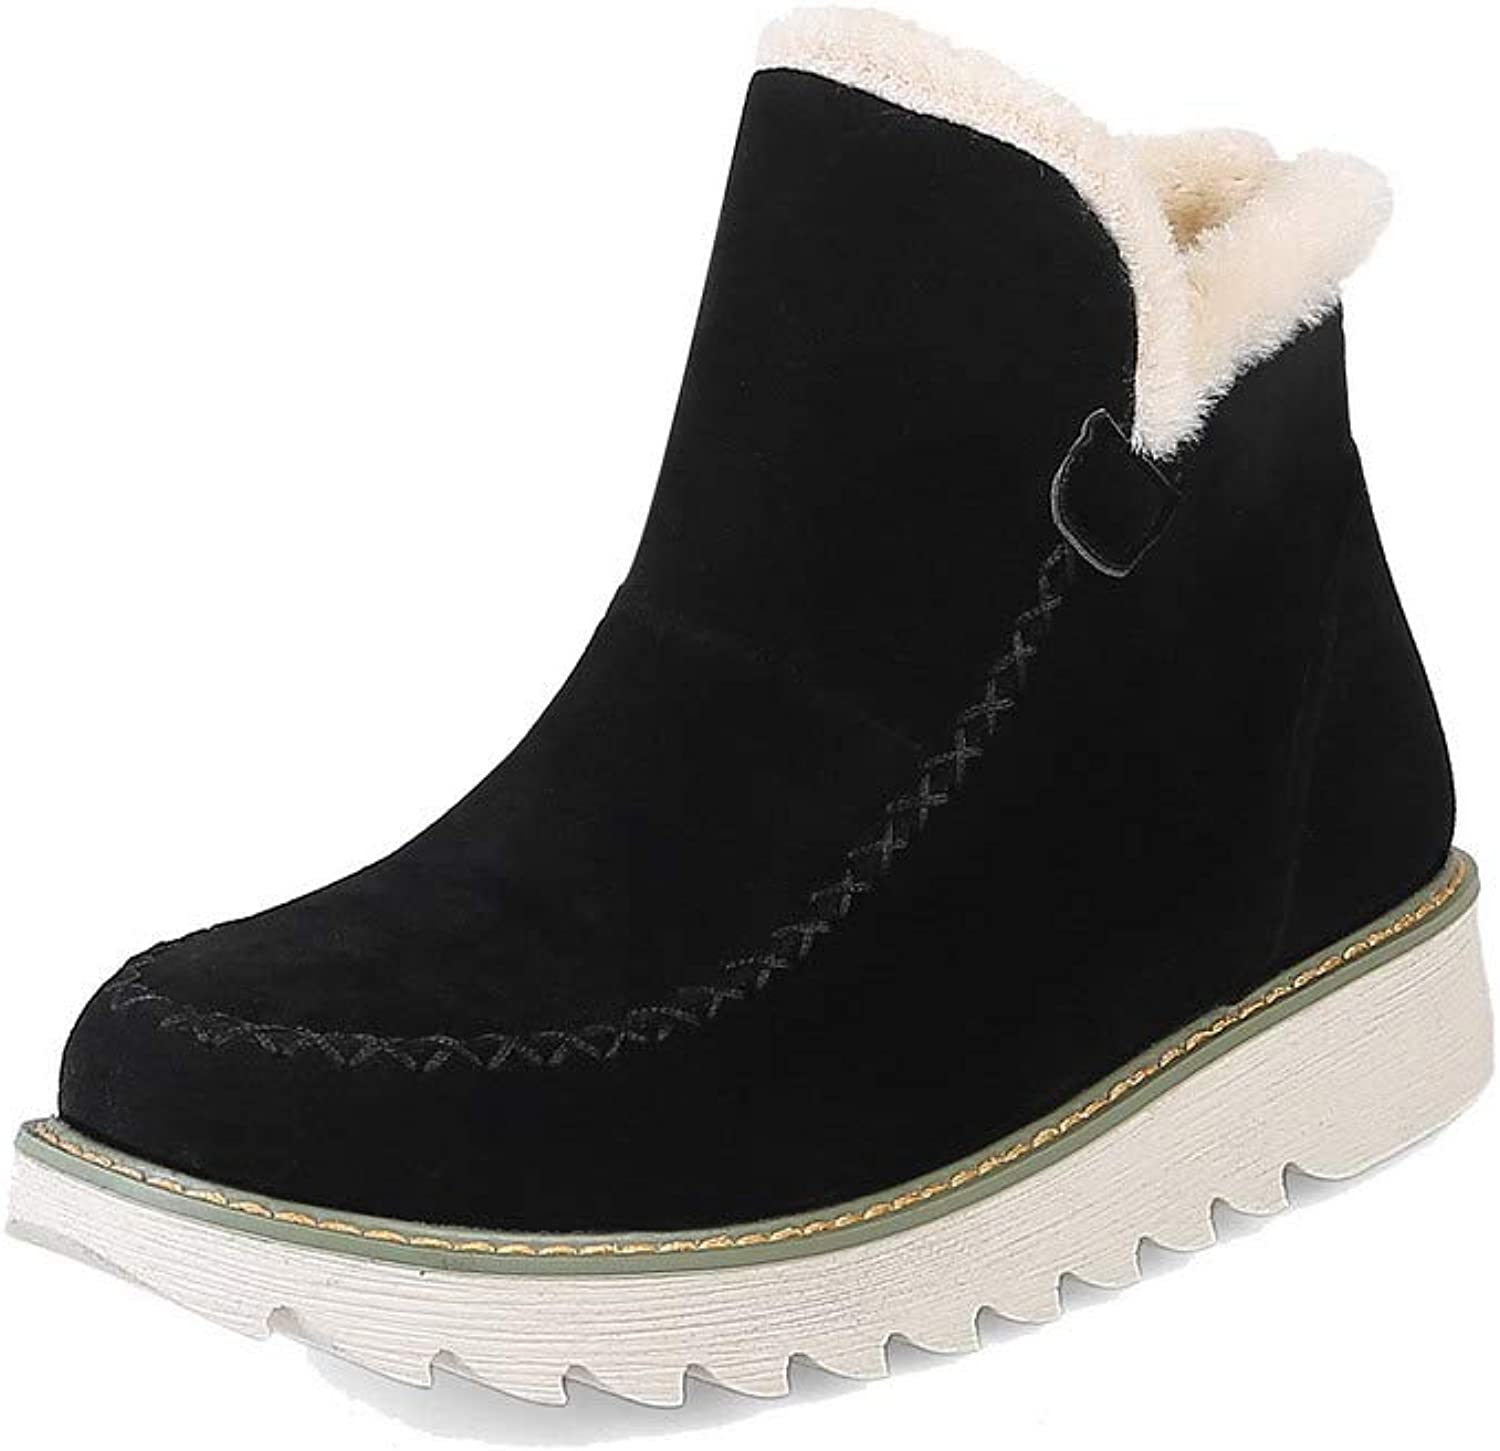 WeenFashion Women's Round-Toe Mid-Calf Kitten-Heels Solid Frosted Boots, AMGXX113335